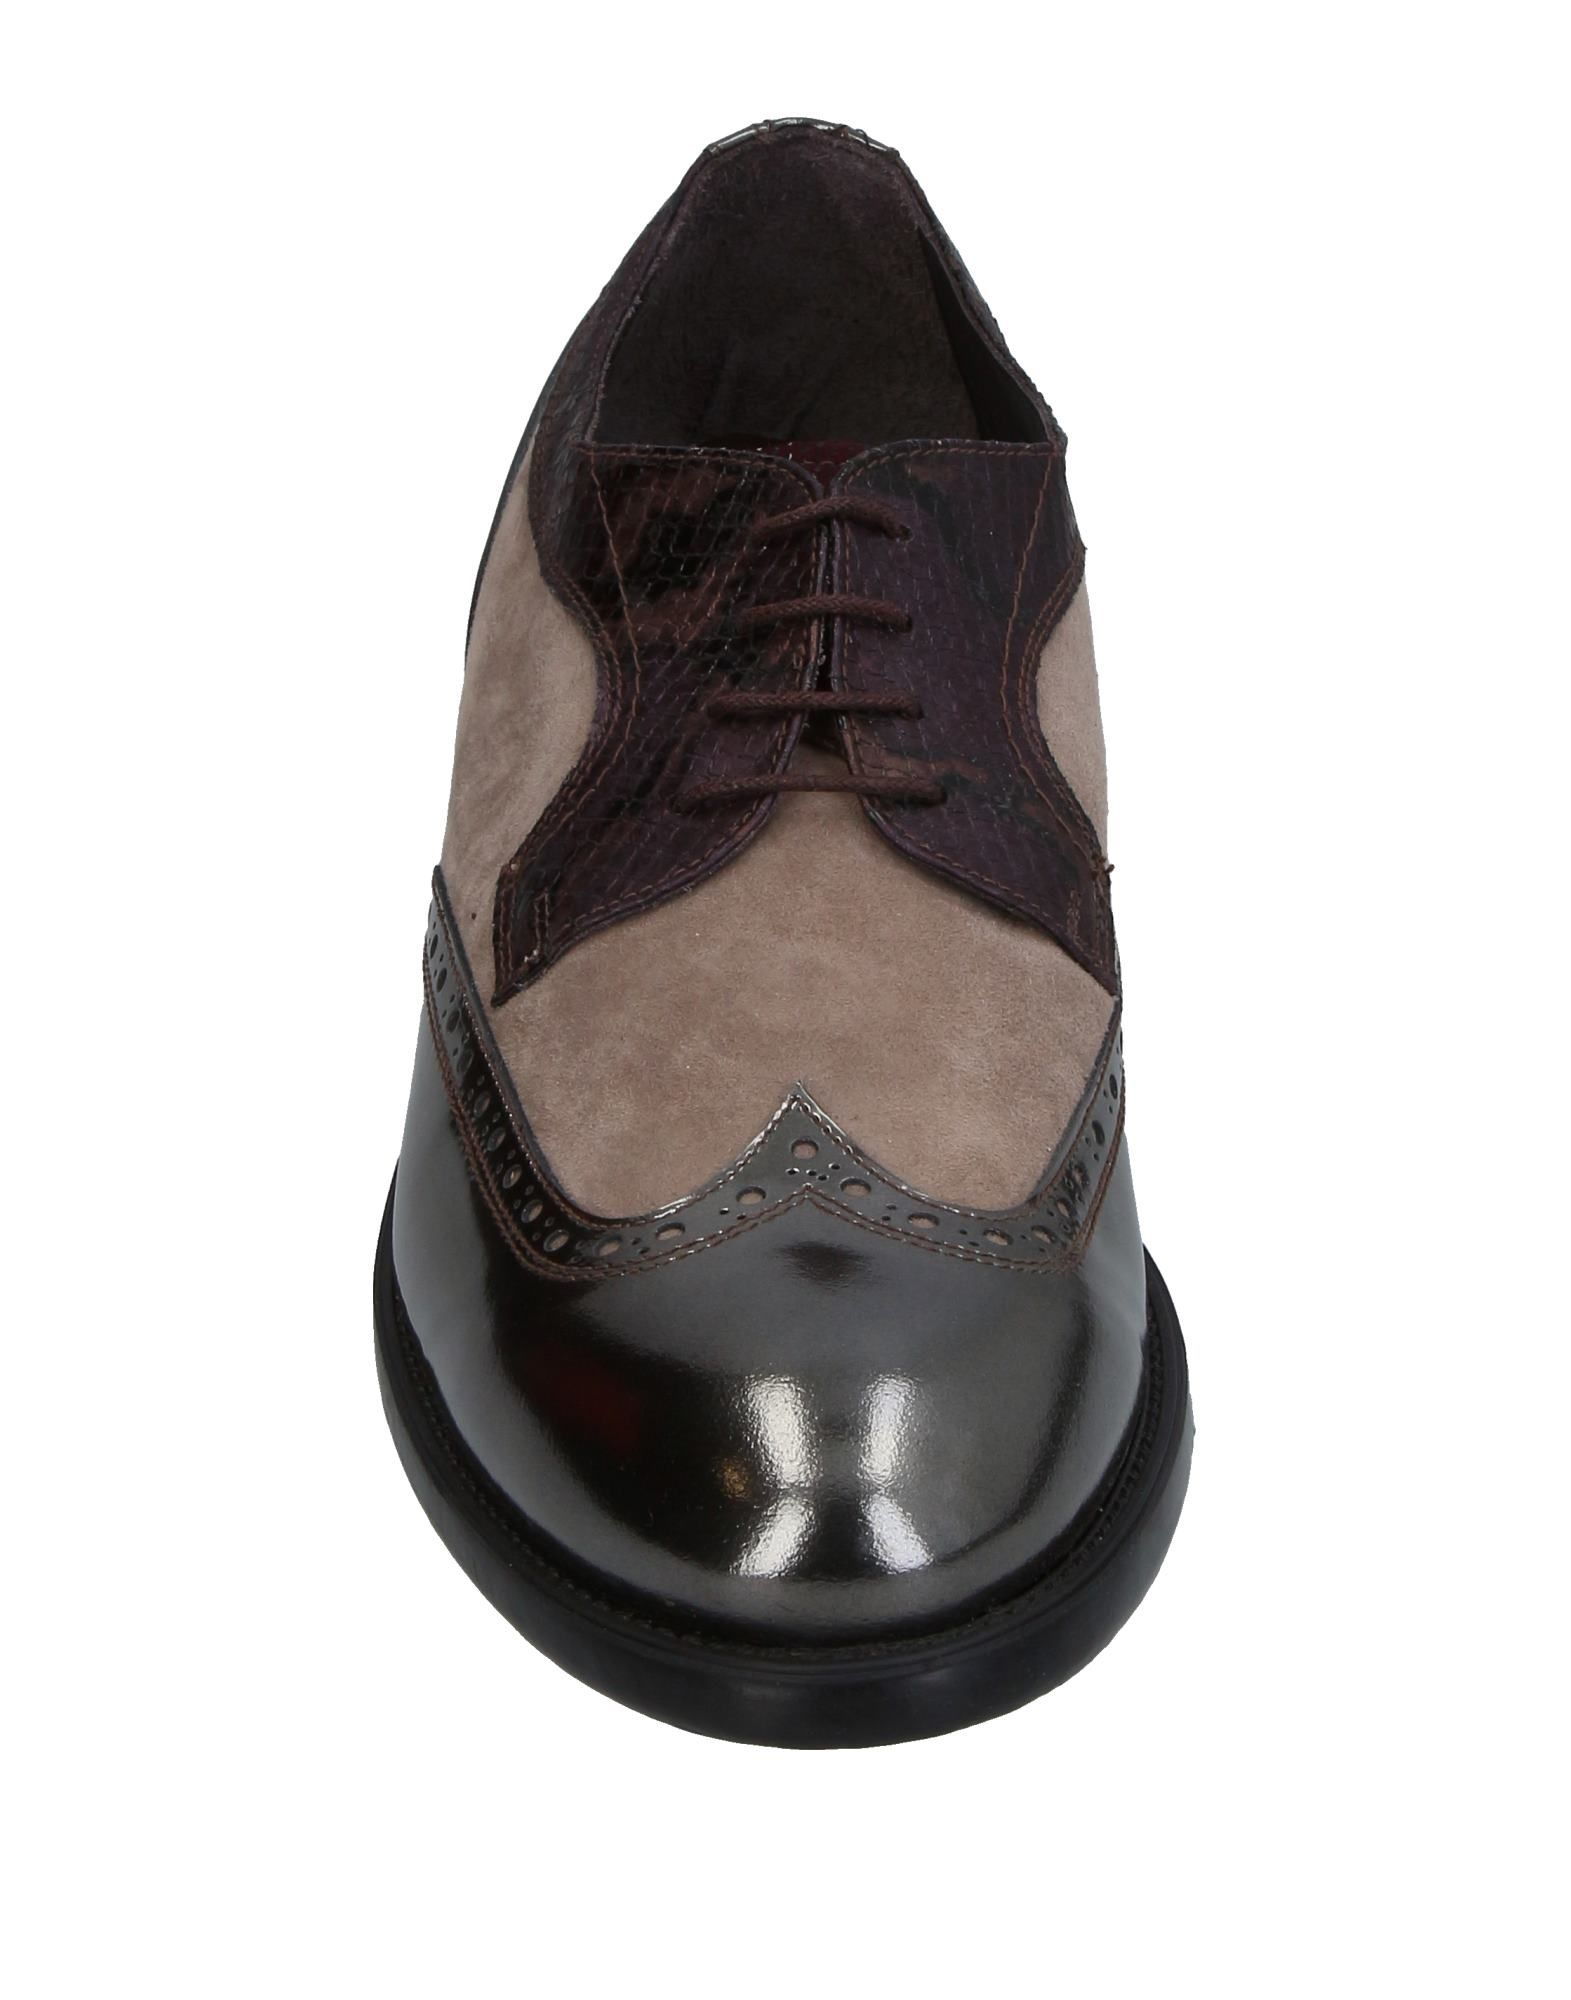 Chaussures À Lacets Ebarrito Homme - Chaussures À Lacets Ebarrito sur